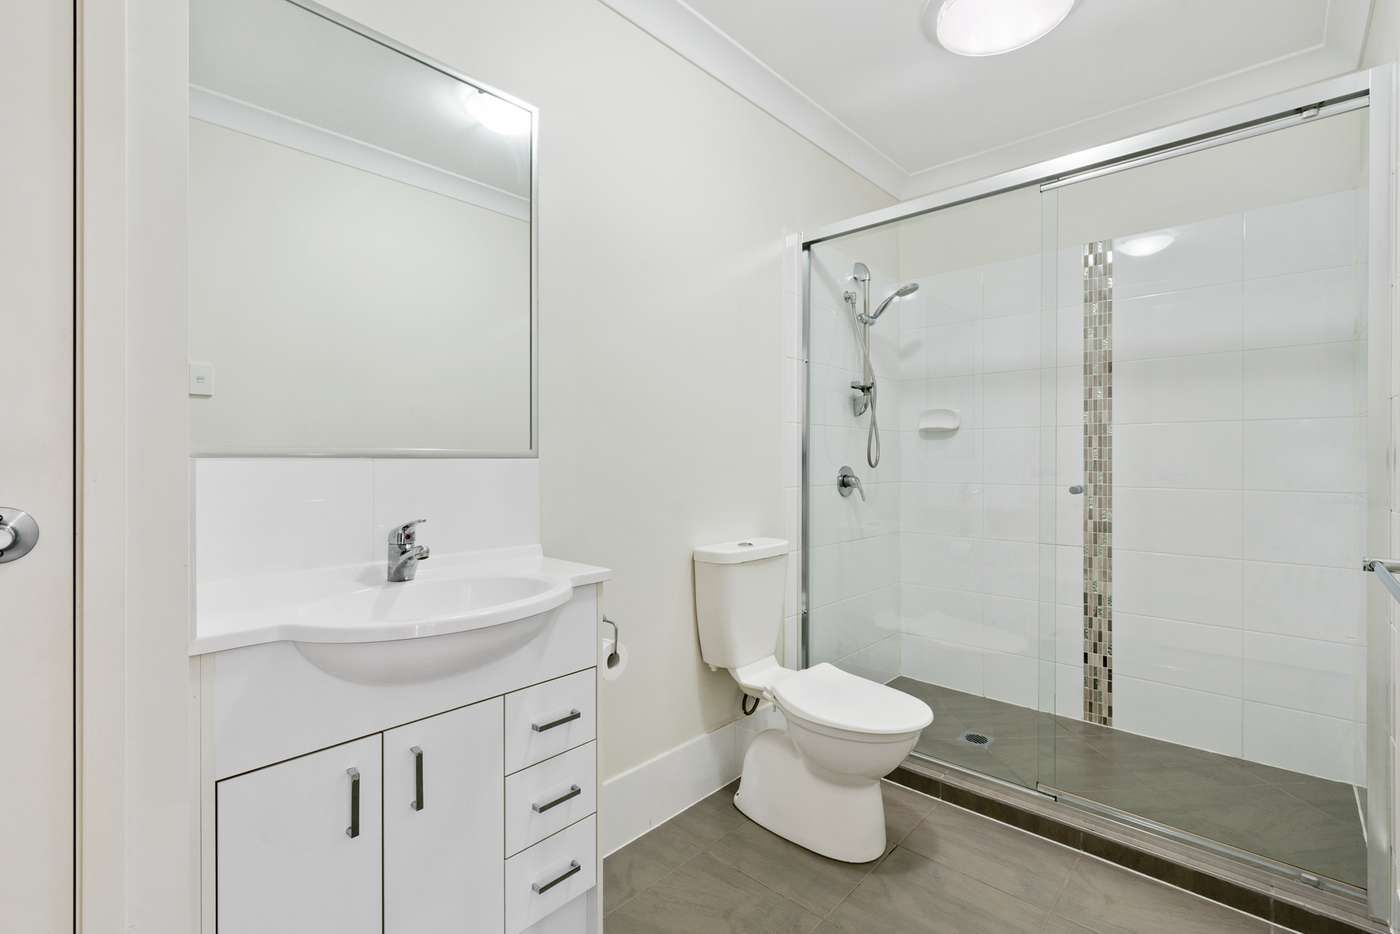 Fifth view of Homely apartment listing, 1 Linear Drive, Mango Hill QLD 4509